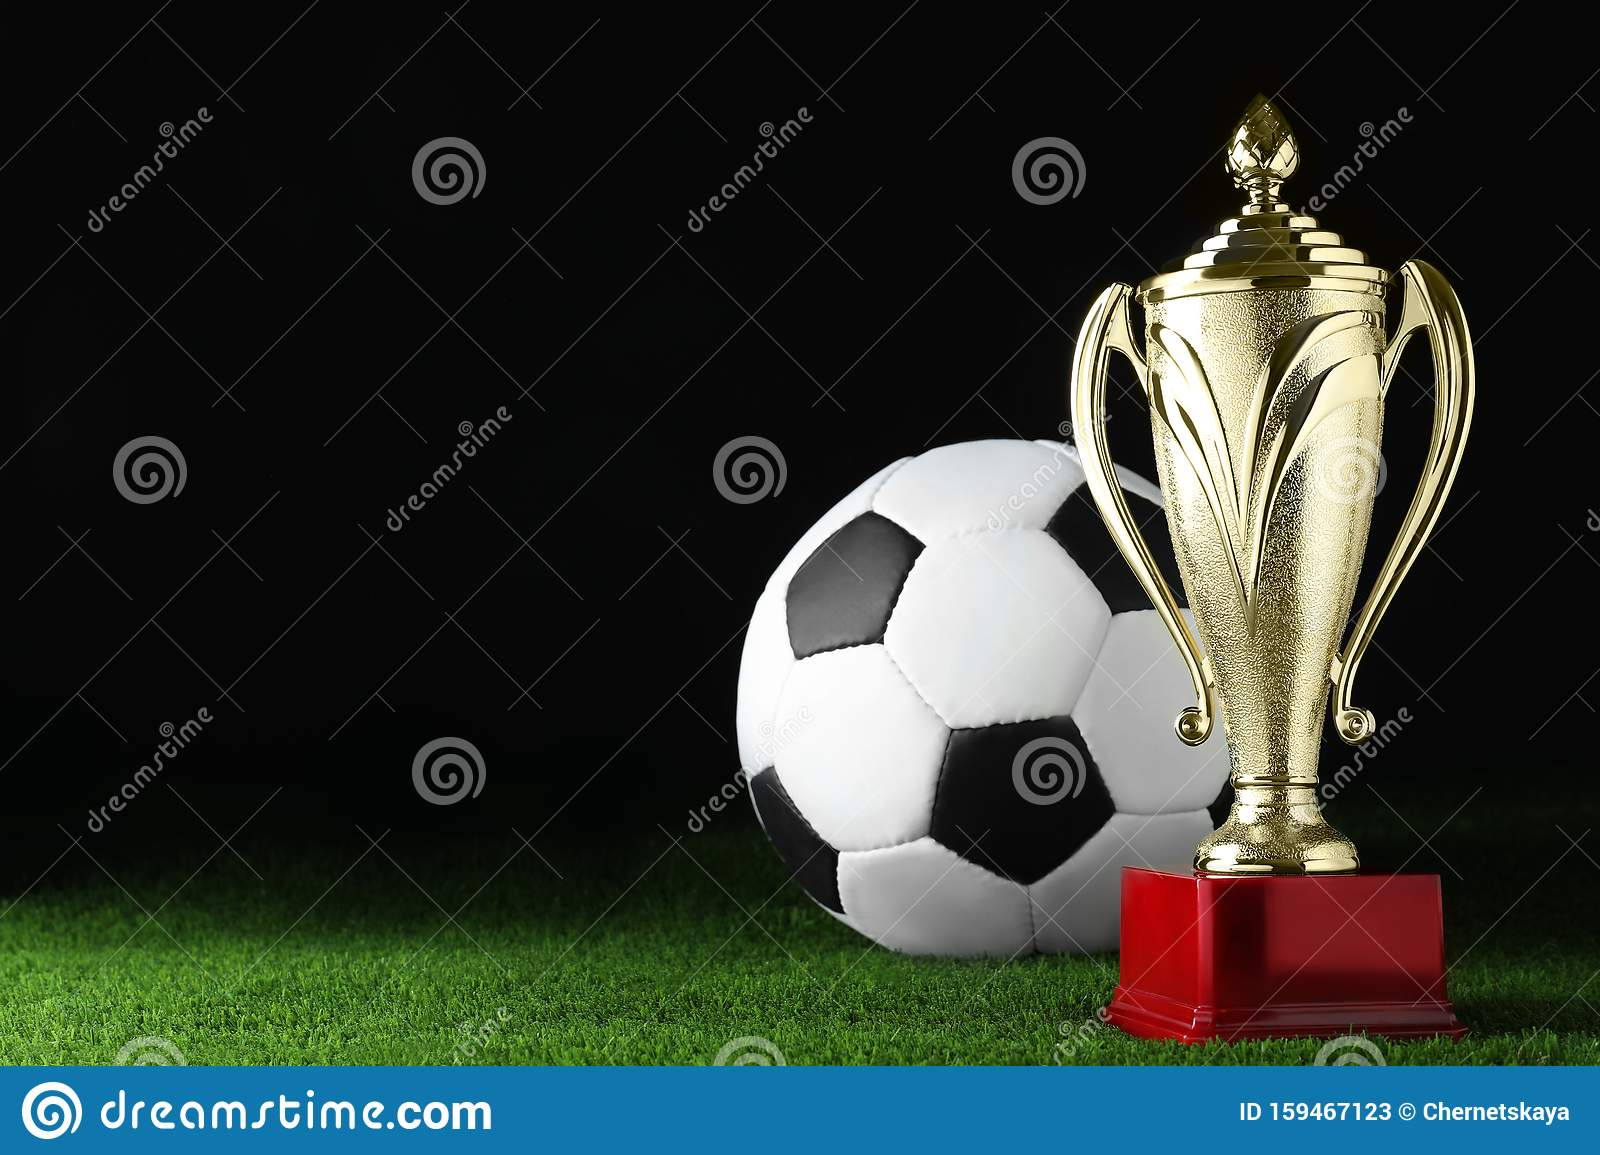 2,163 Golden Ball Football Photos - Free & Royalty-Free Stock Photos from Dreamstime